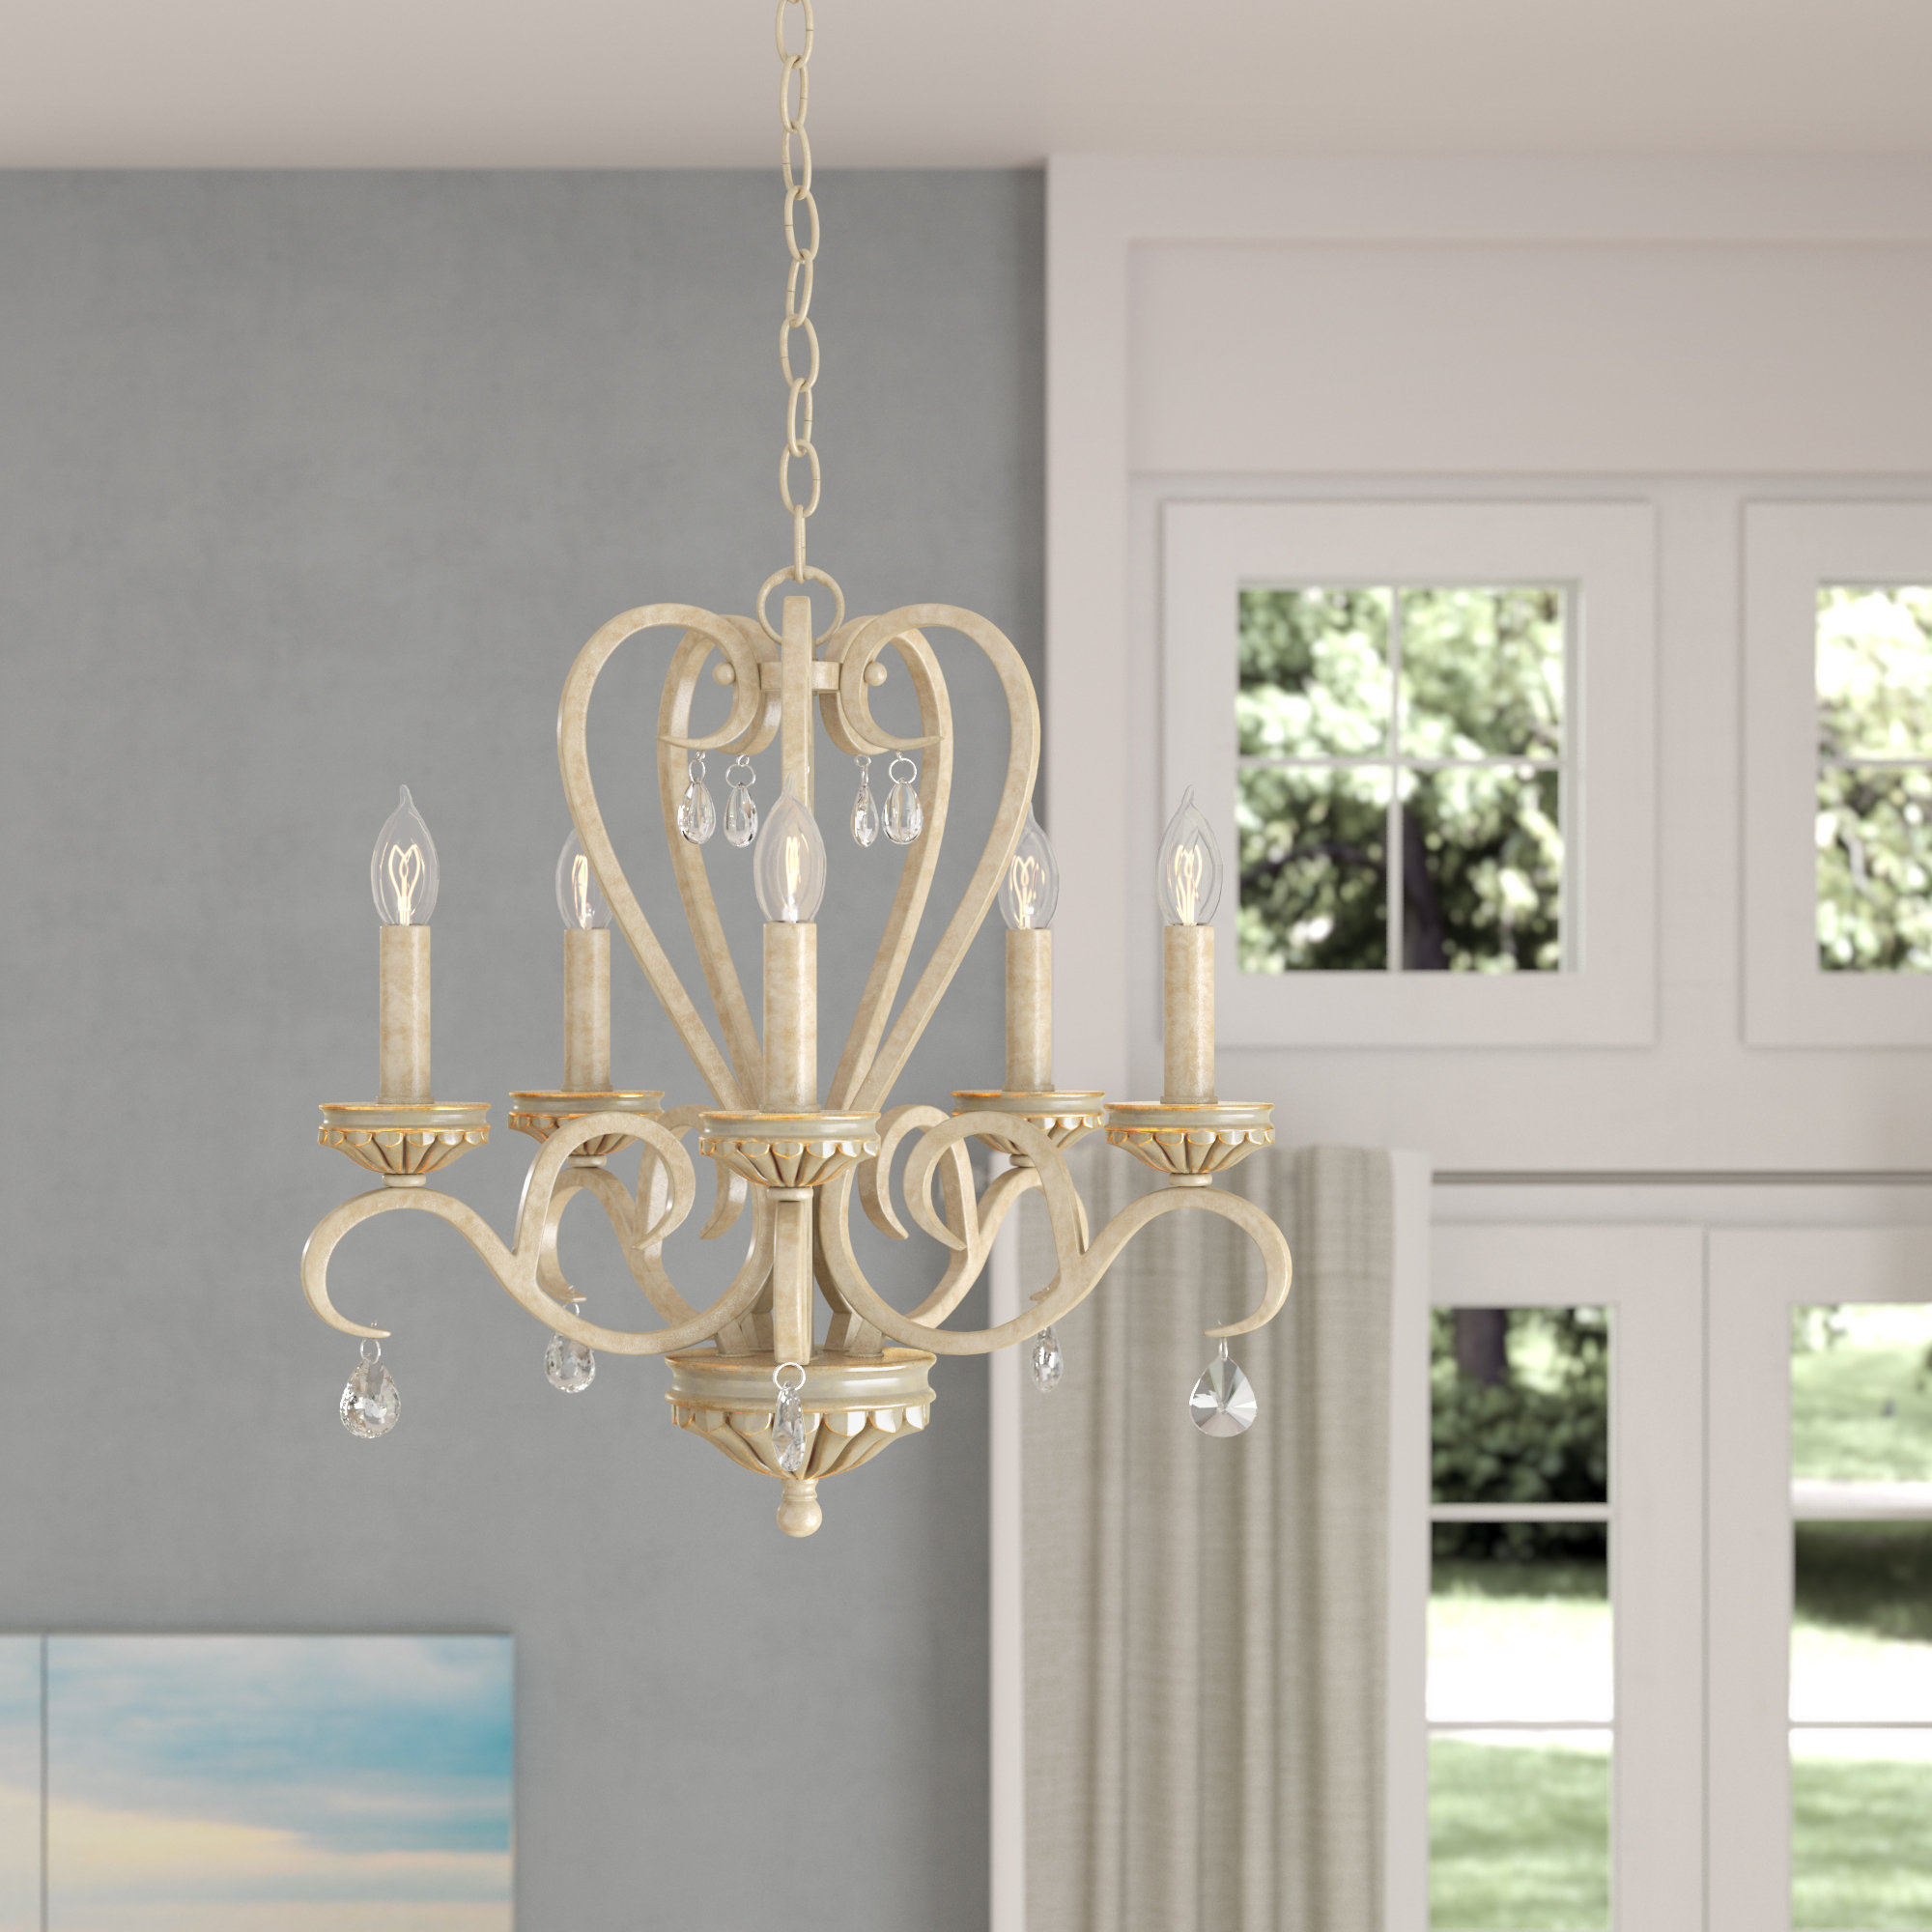 Oriana 4 Light Single Geometric Chandeliers Pertaining To 2020 Khaled 5 Light Candle Style Chandelier (View 18 of 25)